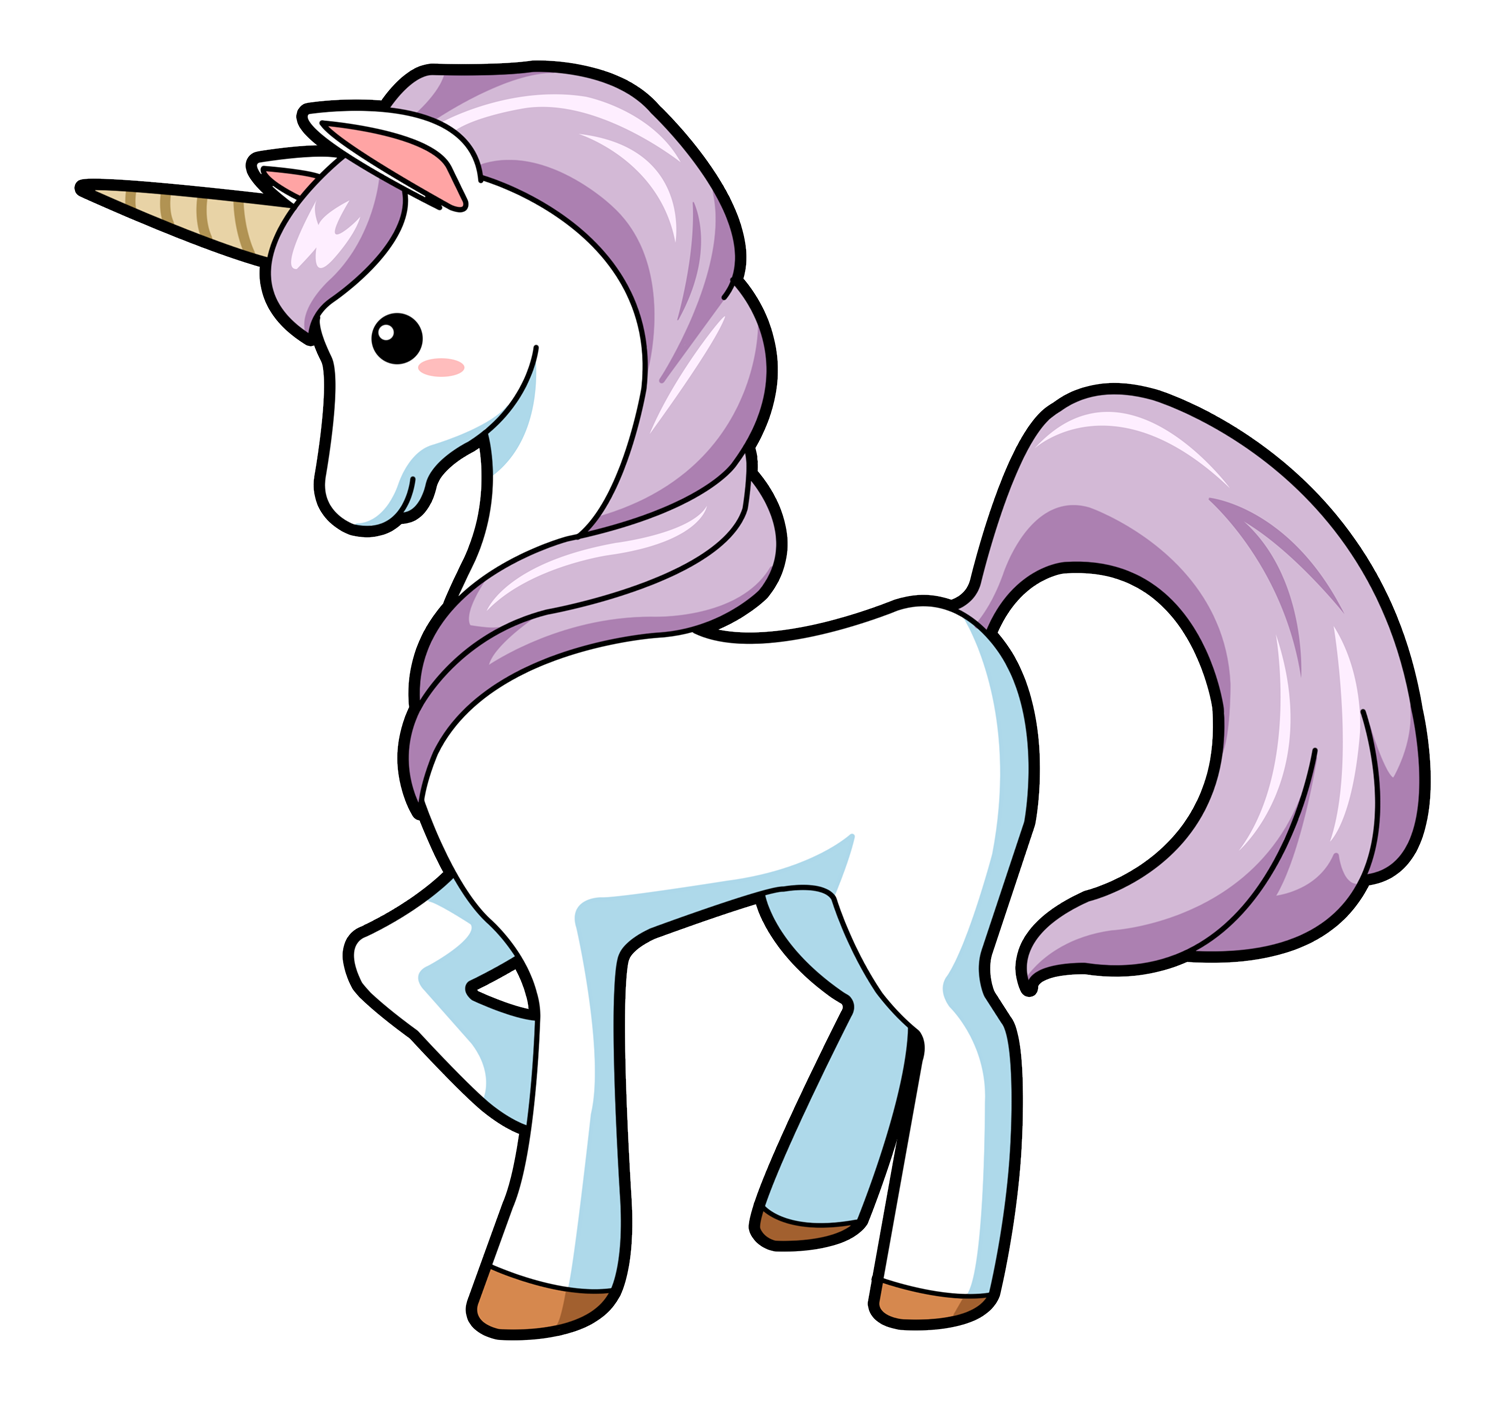 nicorn clipart high resolution